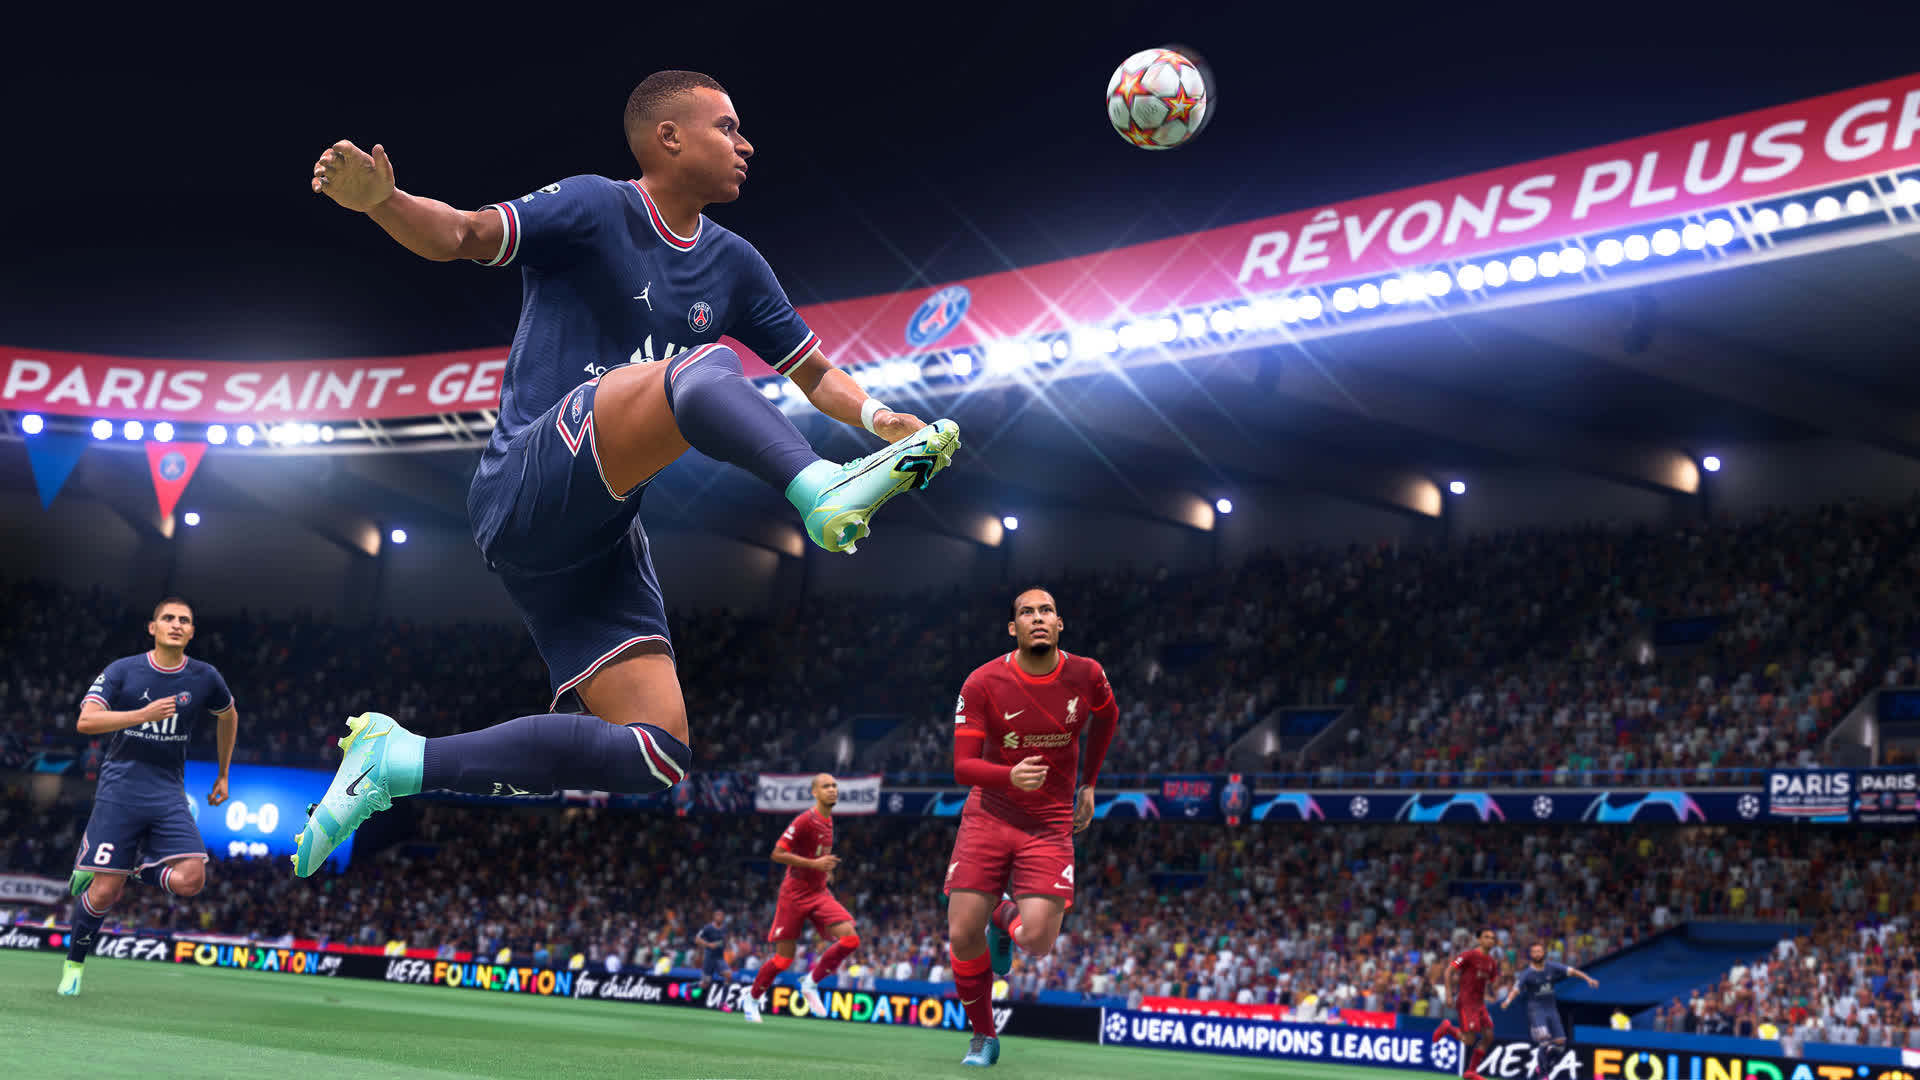 EA Sports is considering renaming its FIFA soccer games